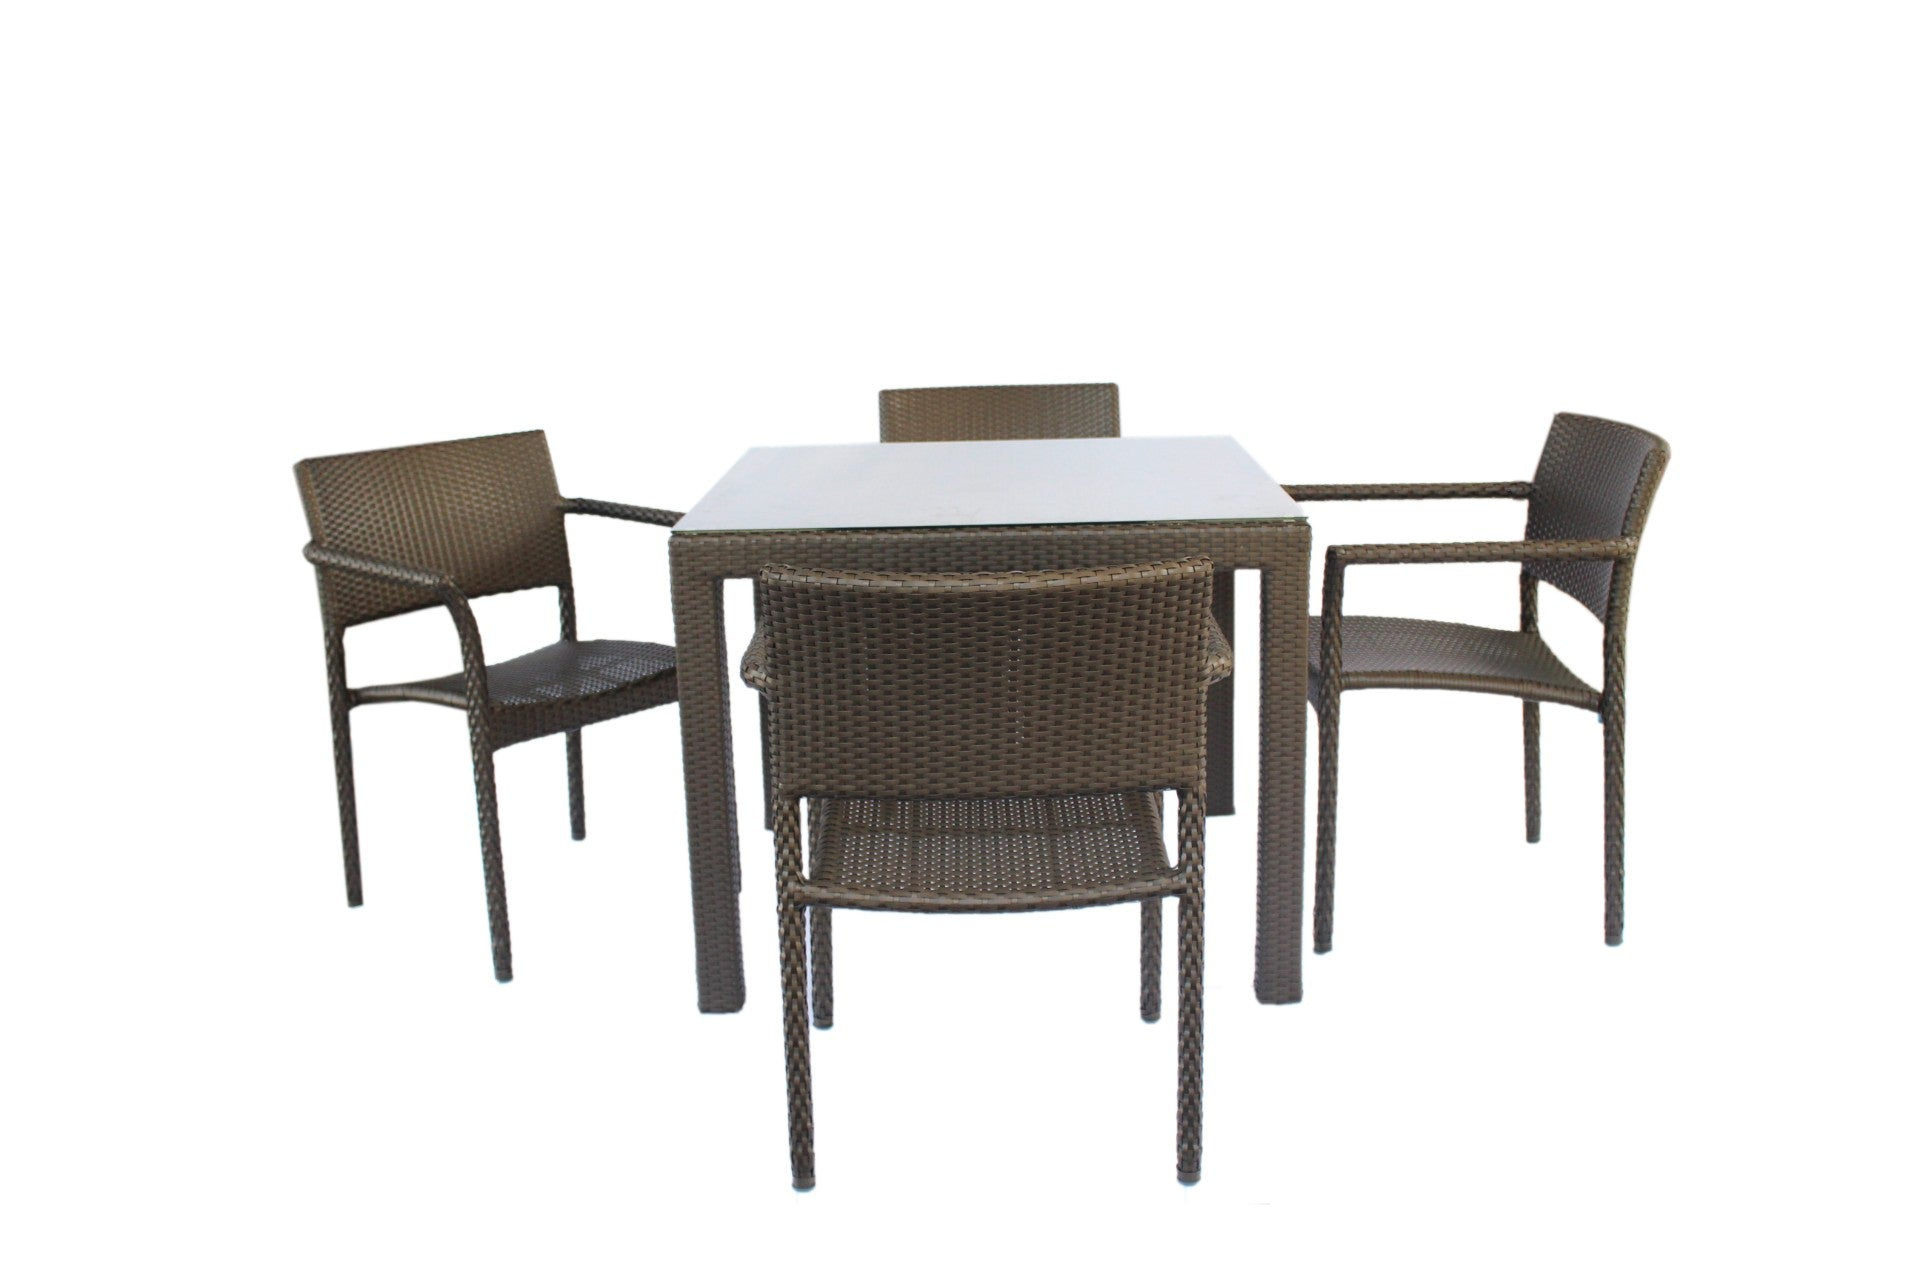 Holiday 4-Seater Dining Set